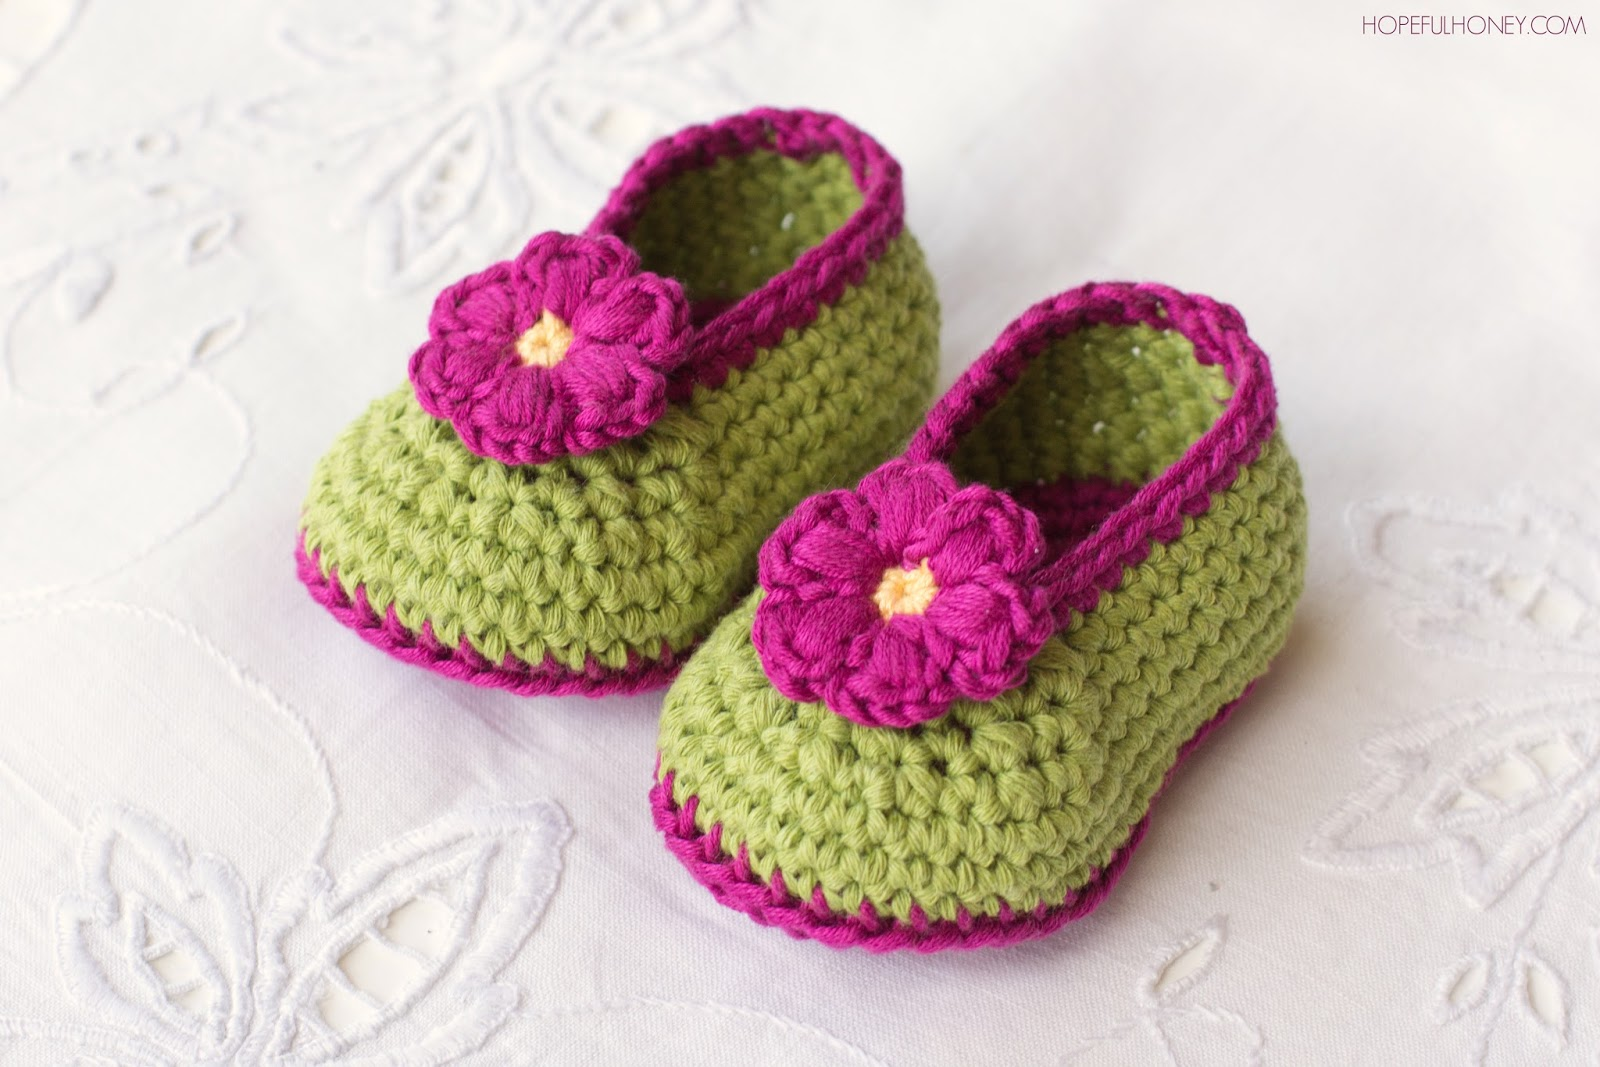 Free Crochet Pattern Baby Lion Booties : Hopeful Honey Craft, Crochet, Create: Fairy Blossom Baby ...